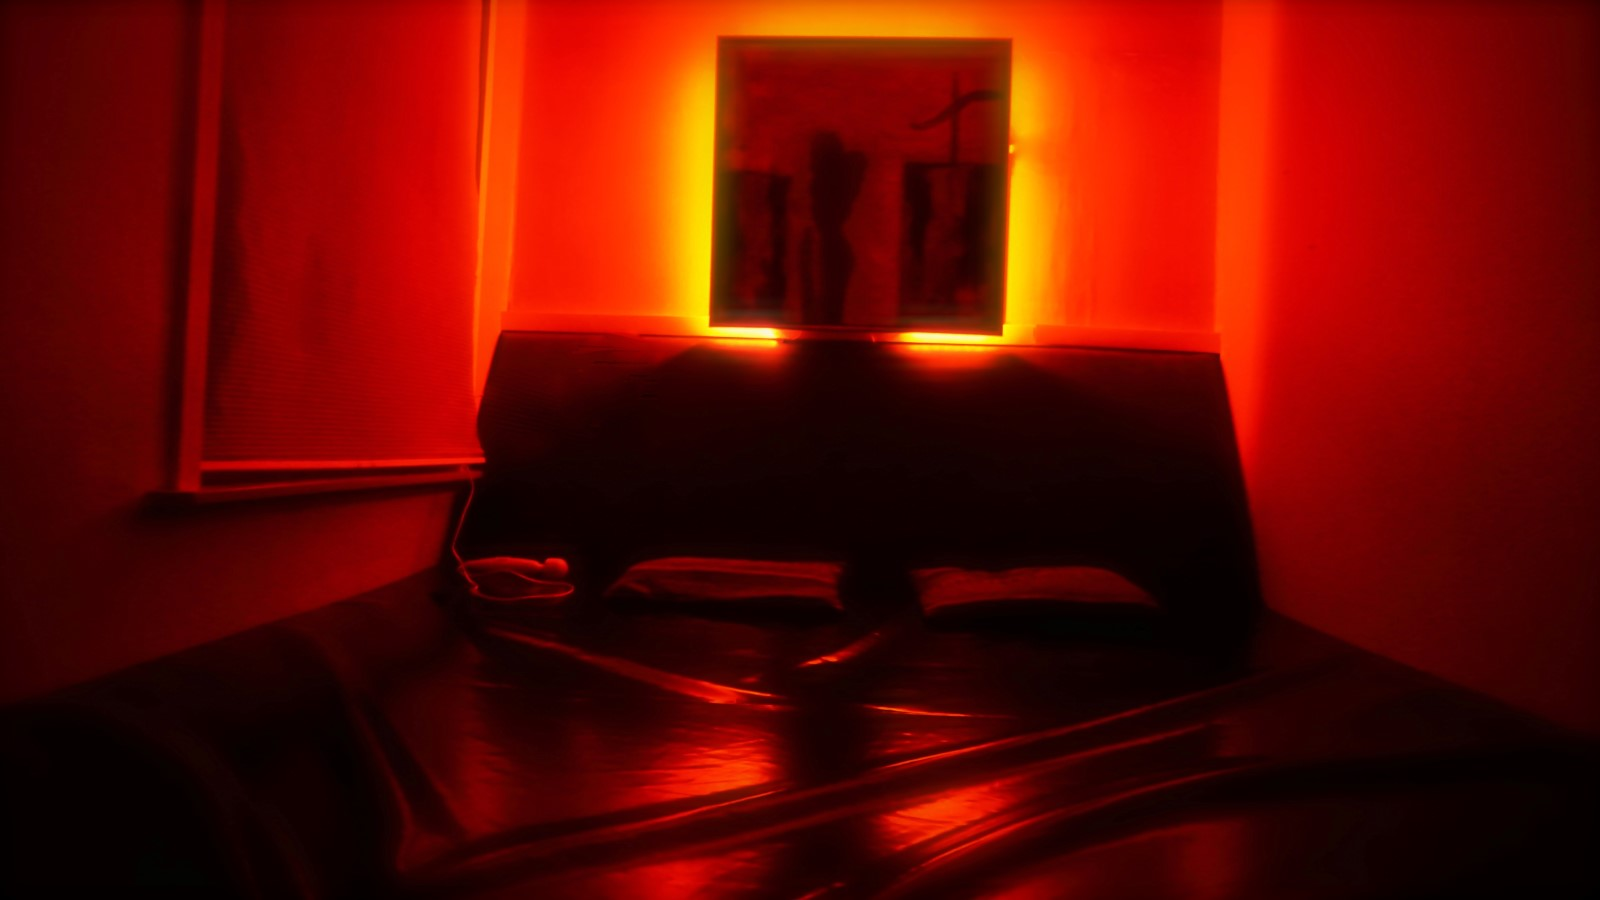 Private Room 1 in Red Light District